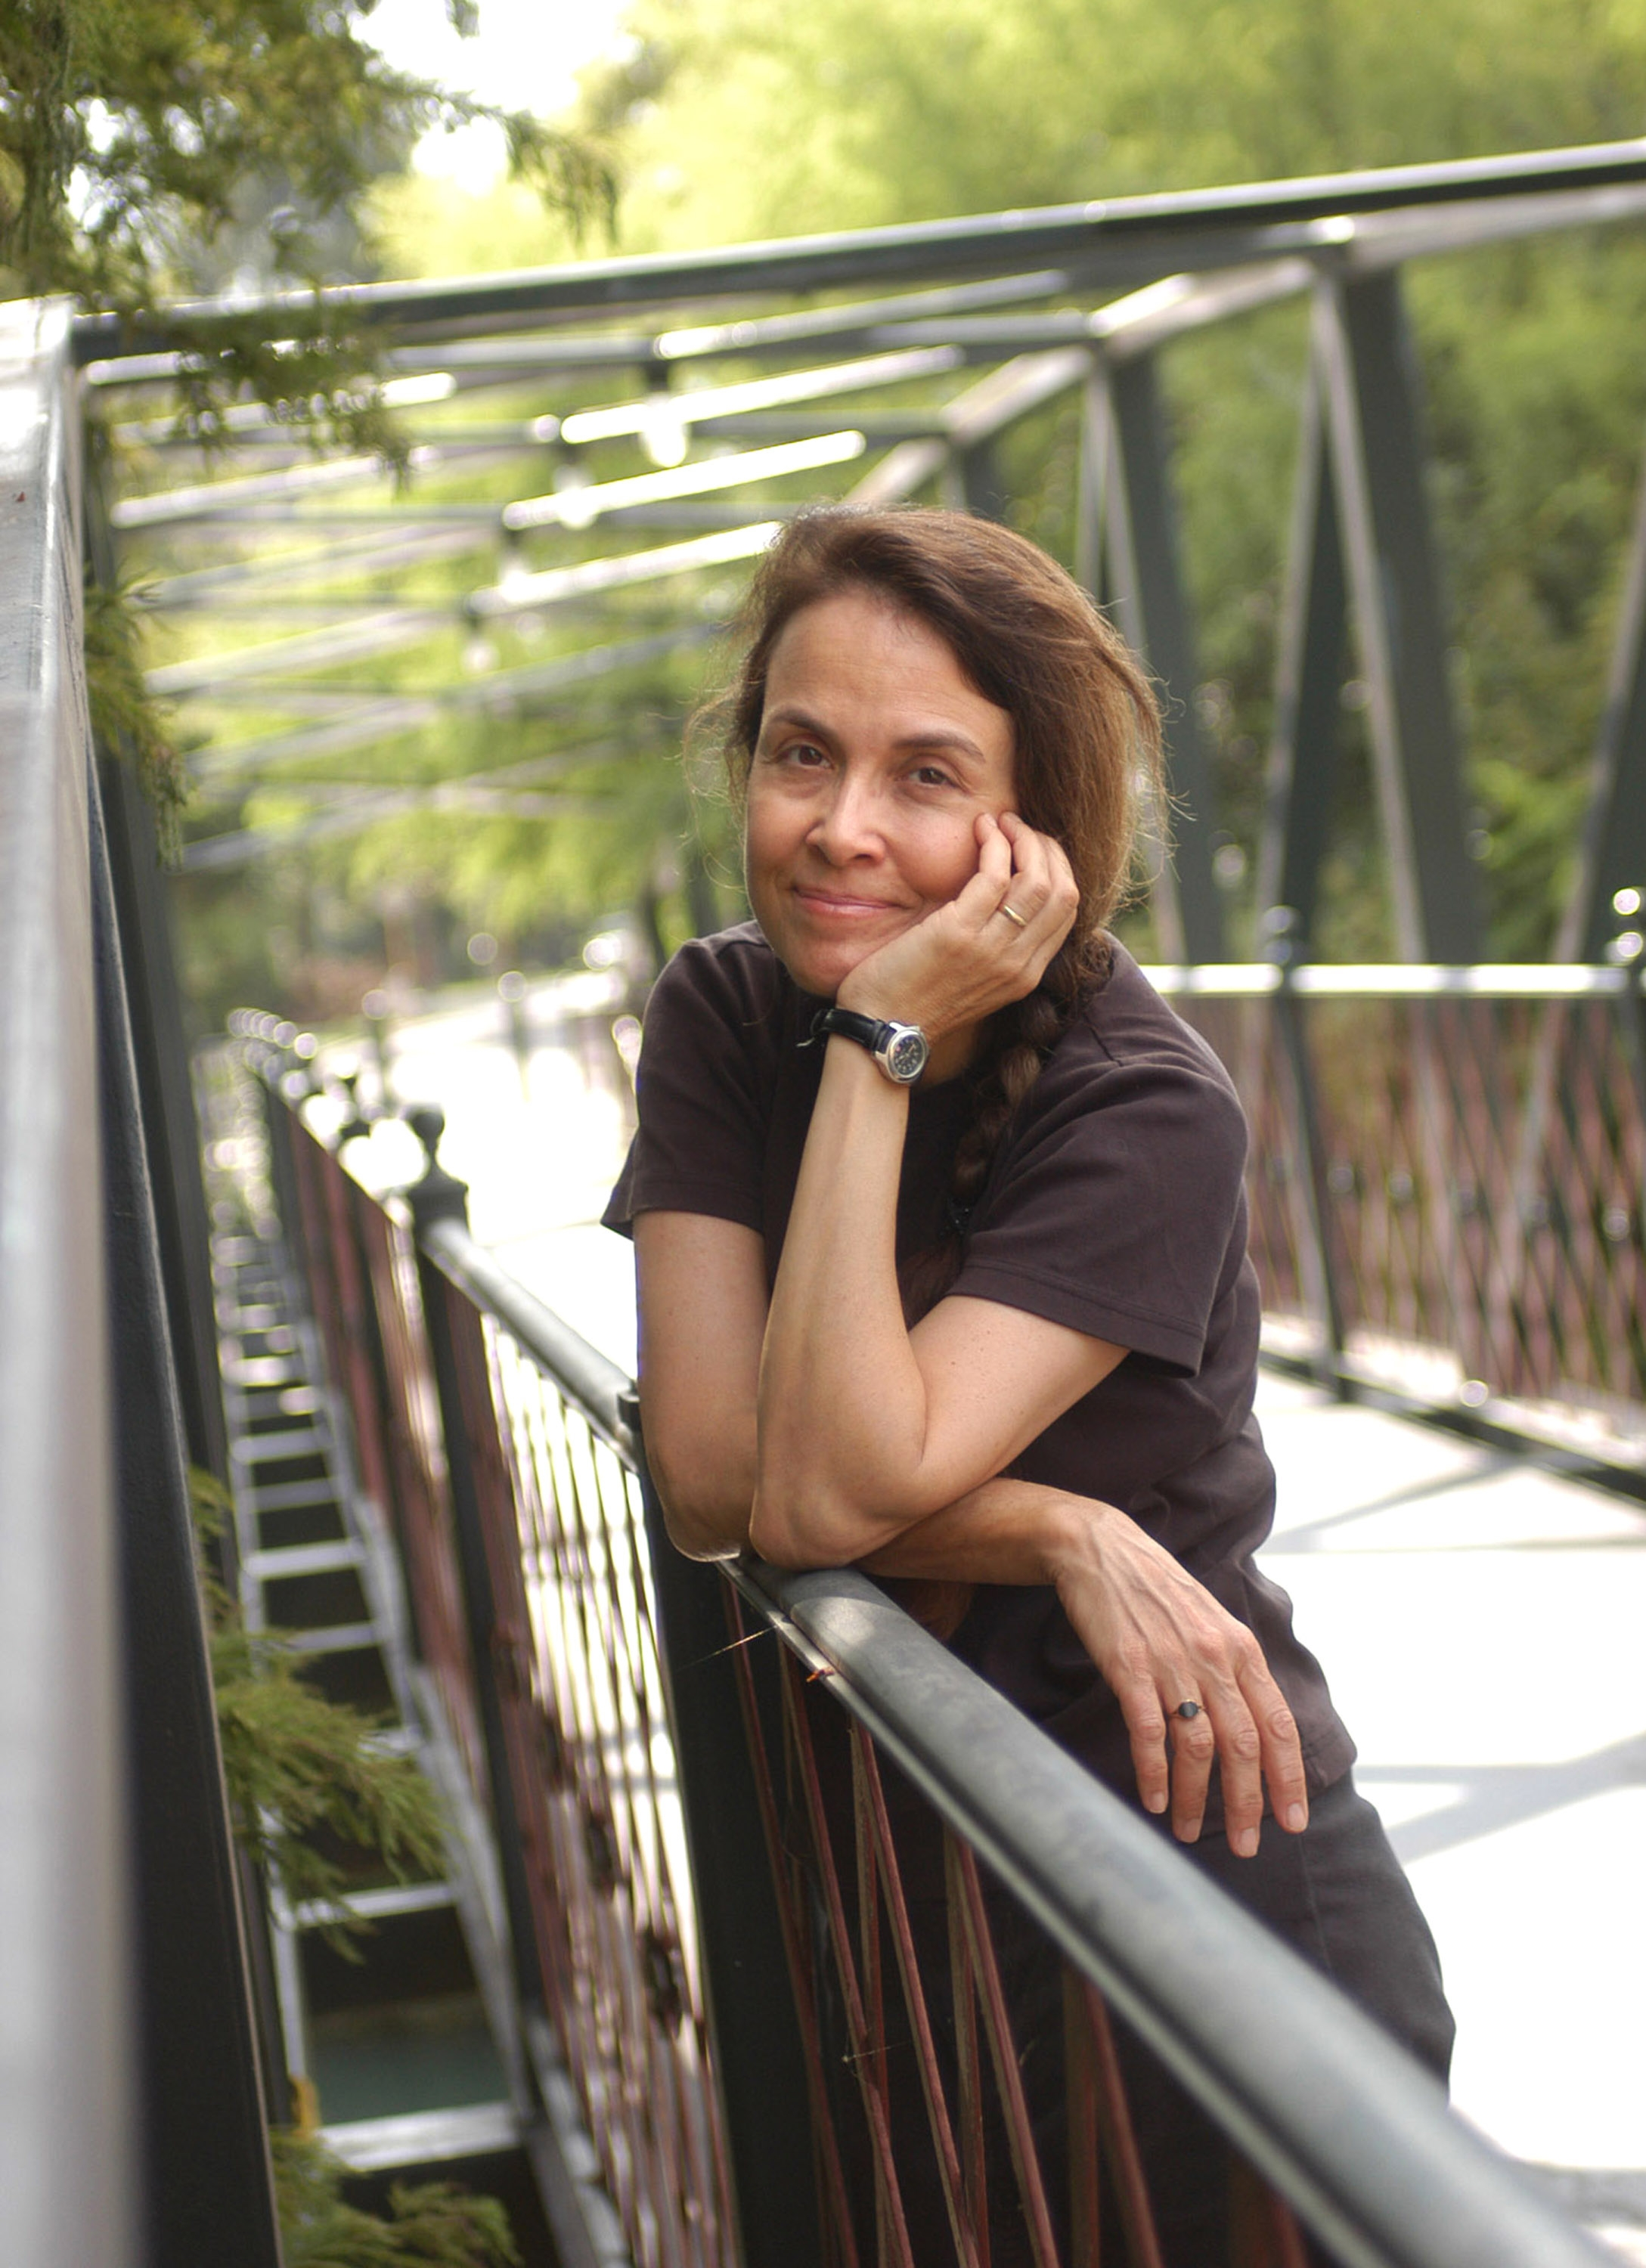 Picture of Naomi Shihab Nye, poet for Joshua Ringel event